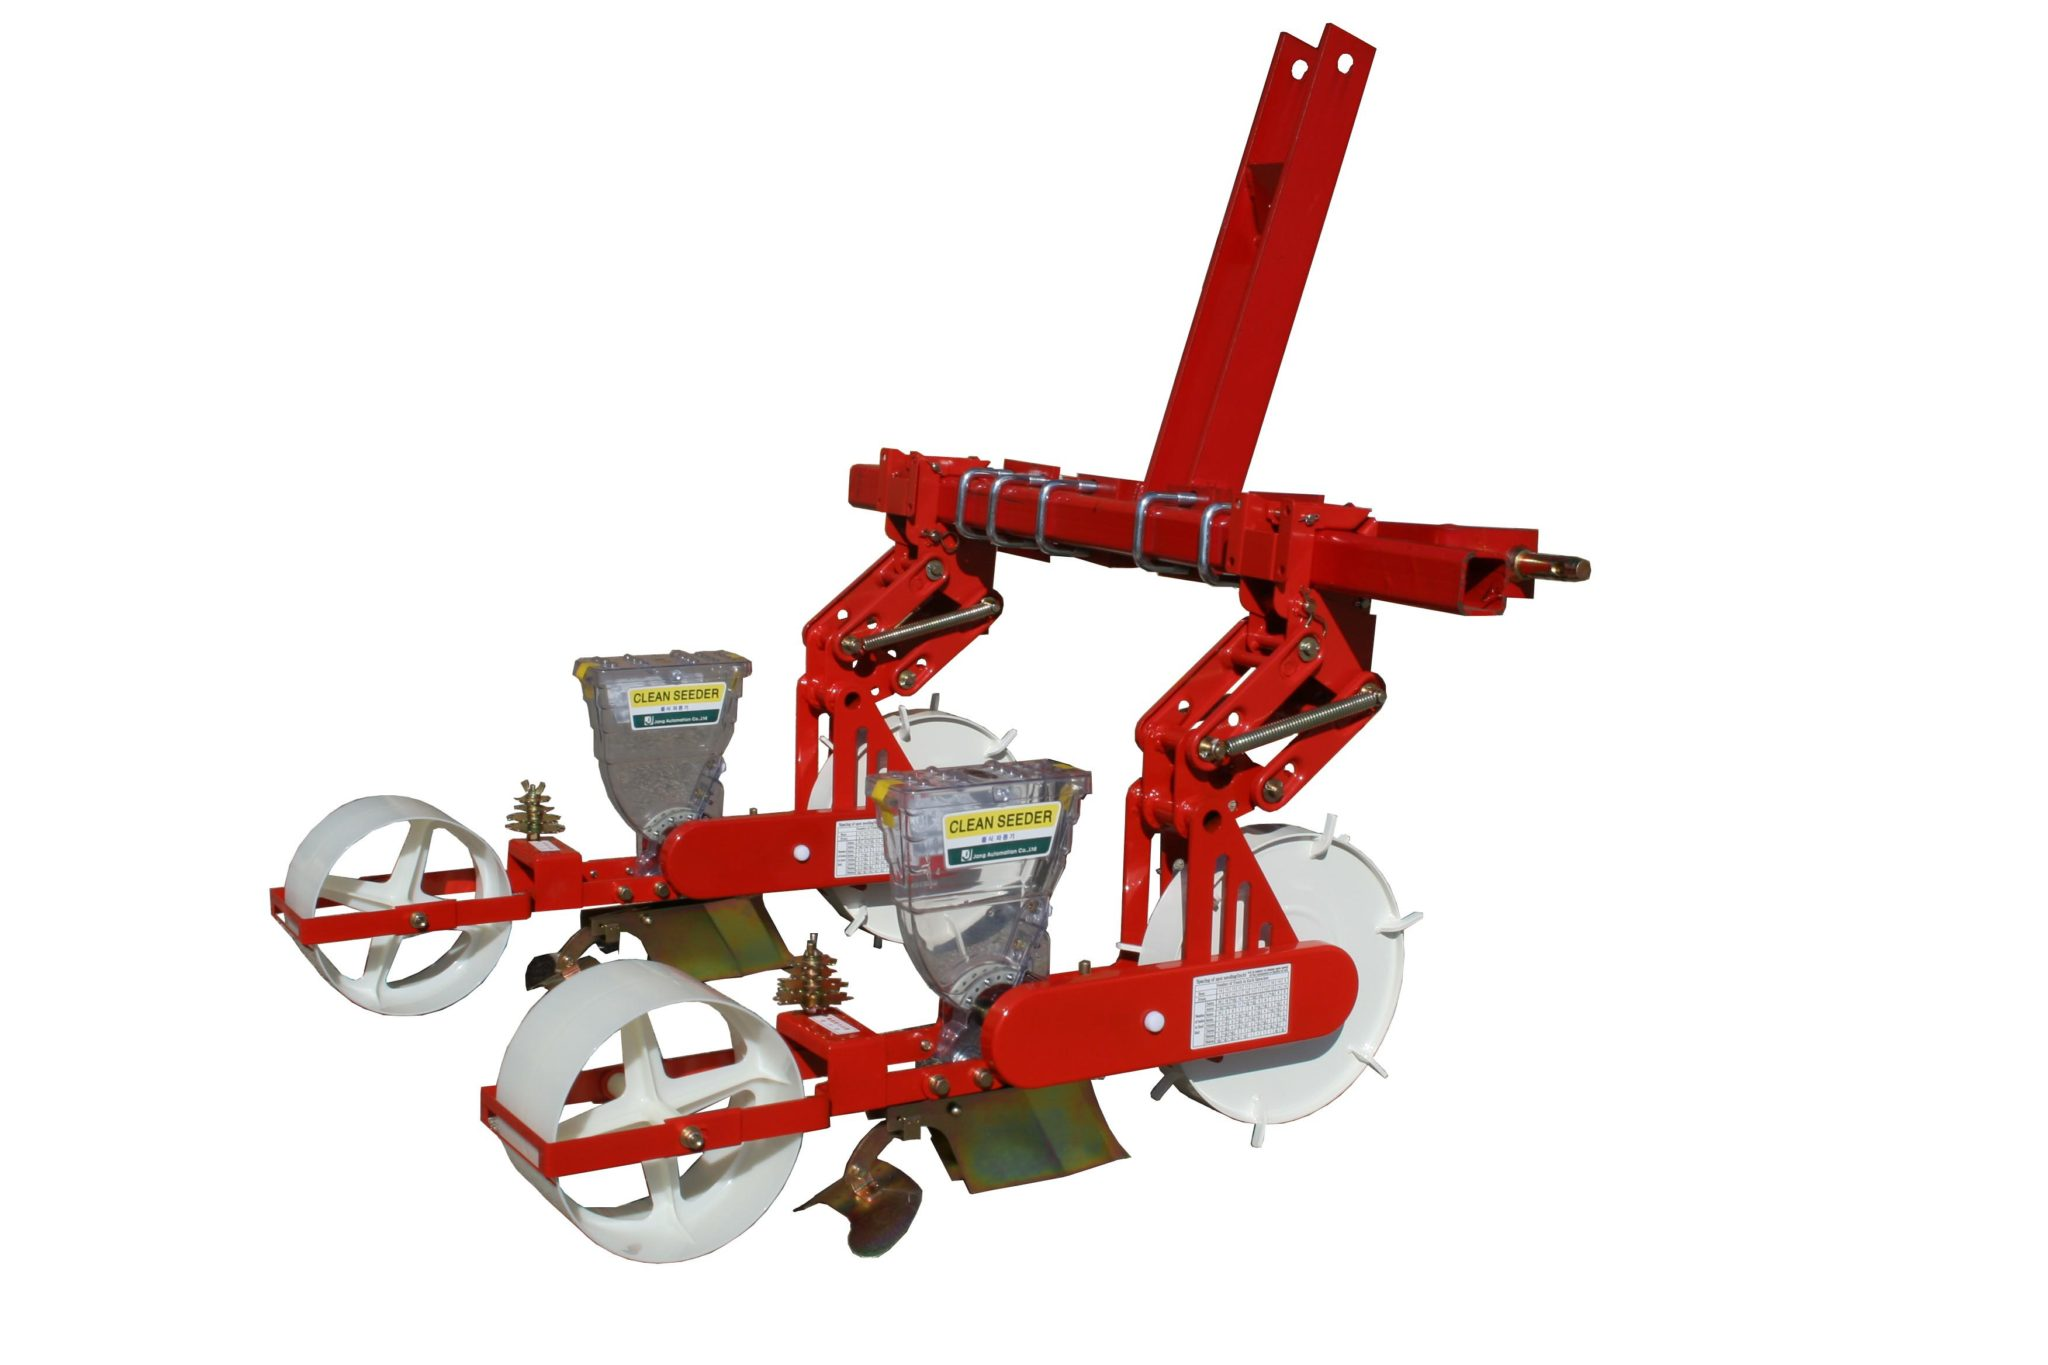 JPH-2 Jang Seeder ~3 Pt. Hitch Tractor Mount Seeder that Singulates Seeds